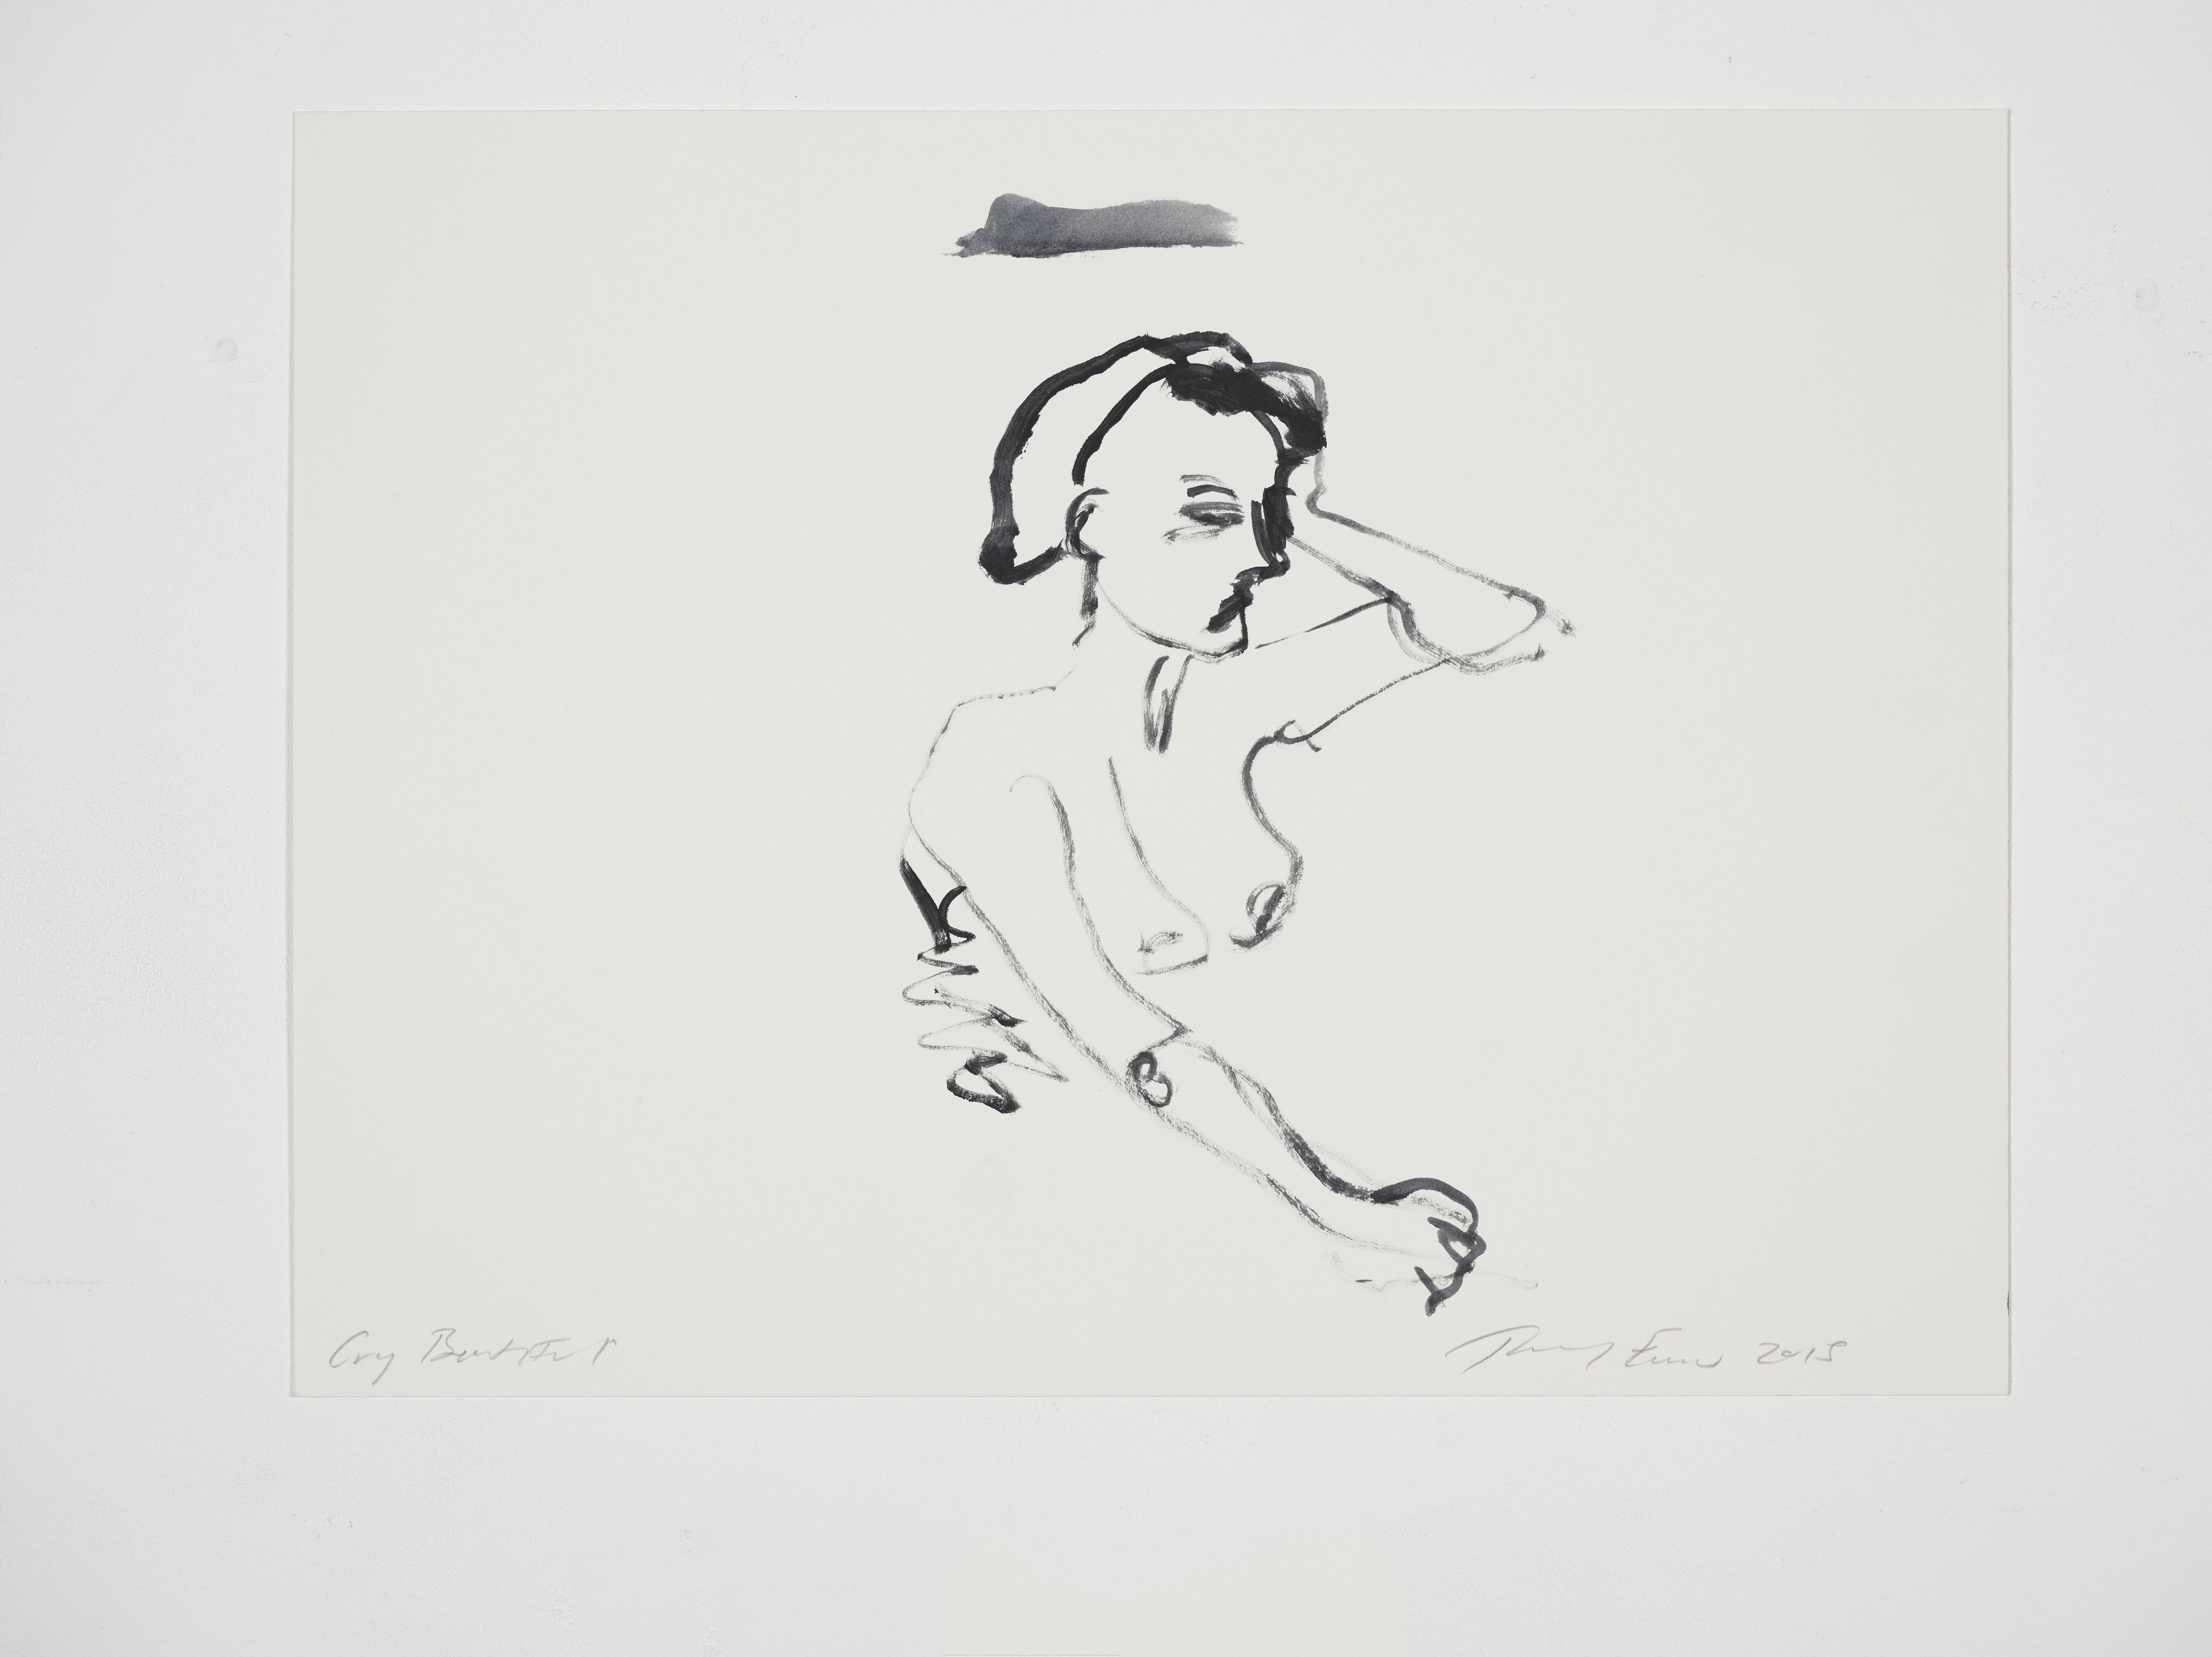 Tracey Emin Cry Beautiful 2015 (medium res) 1